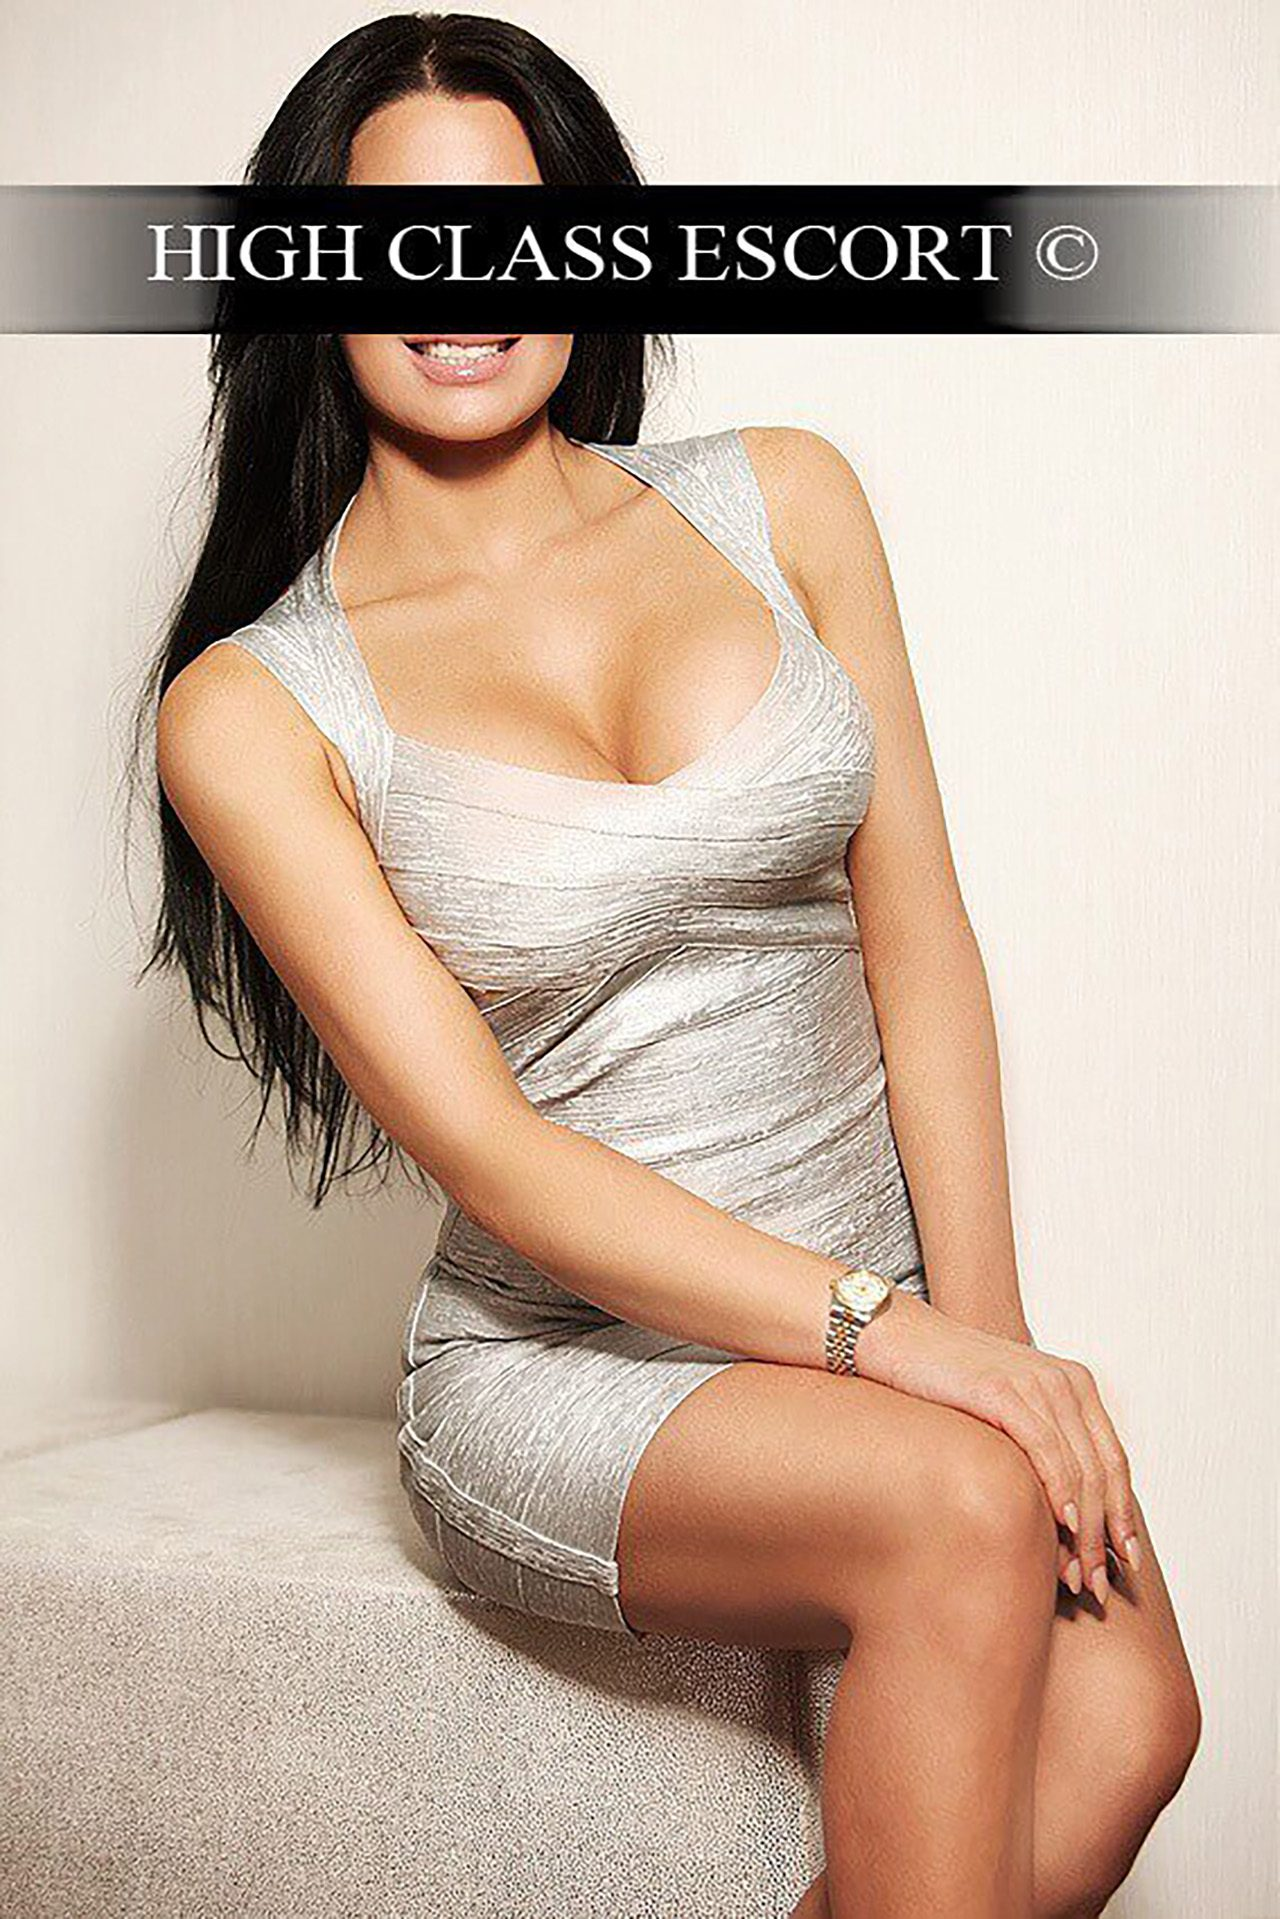 Escort Düsseldorf Model Lena Escortservice